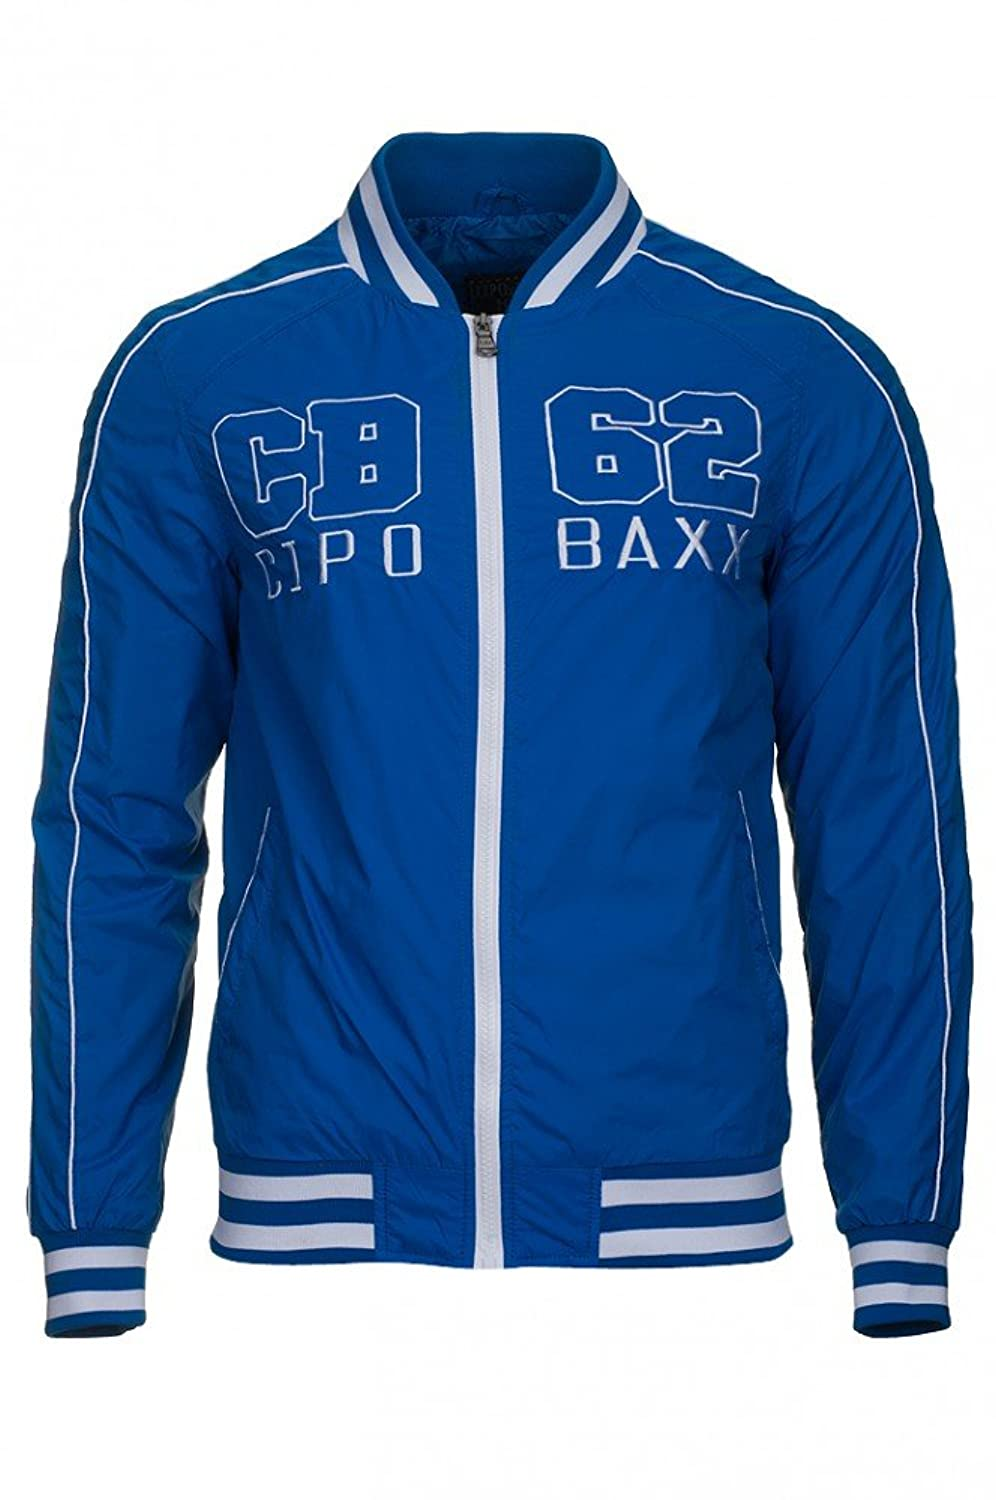 CIPO & BAXX Men's Bomber Jacket Blue C-7325